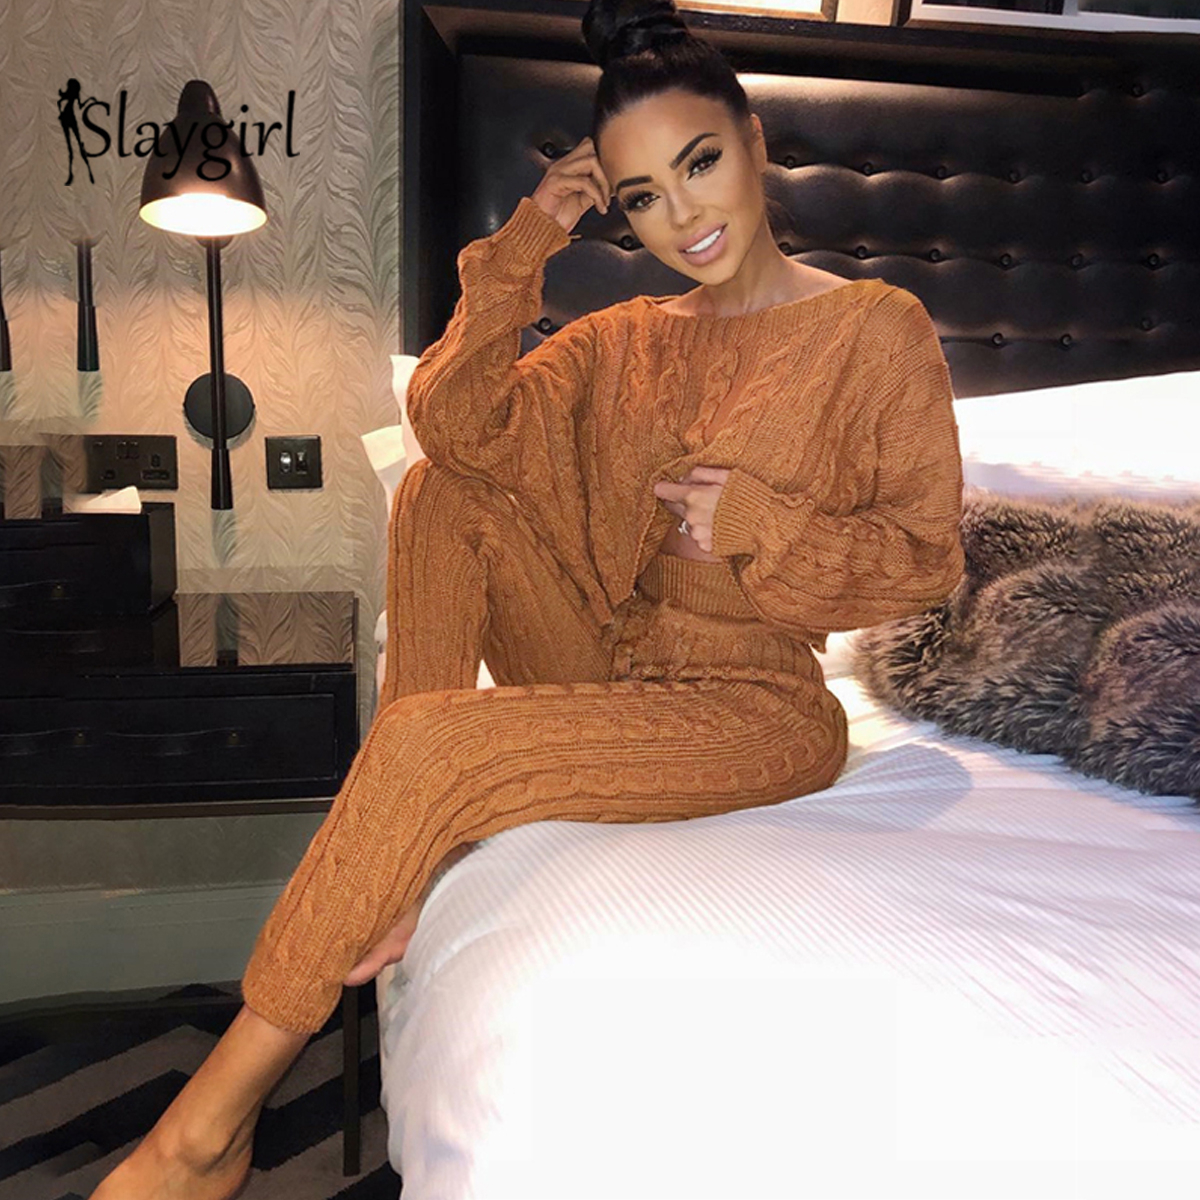 Slaygirl Sweater Knitted Jumpsuits For Women 2019 Winter Rompers Womens Jumpsuit Party Fashion Long Sleeve Bodycon Sexy Jumpsuit